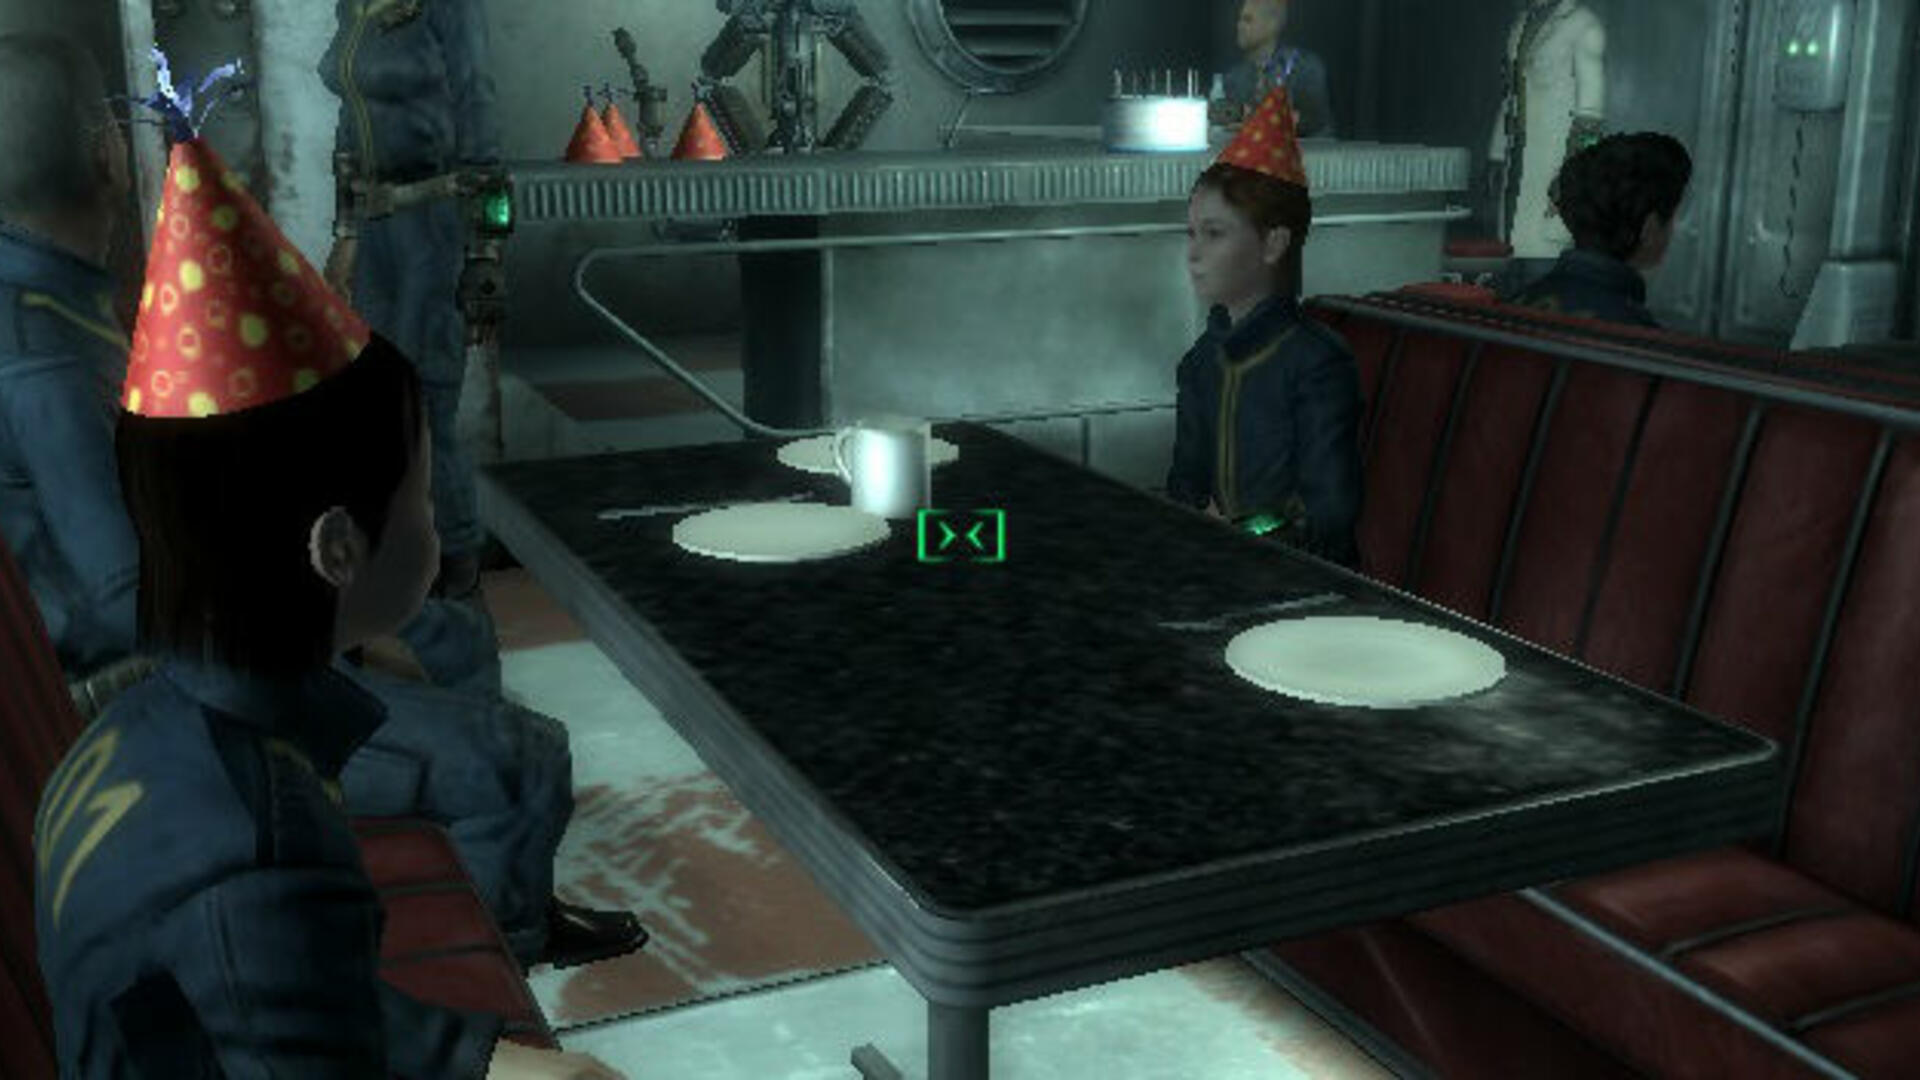 Fallout 3 Mod Restores Tons of Cut Content to the Game